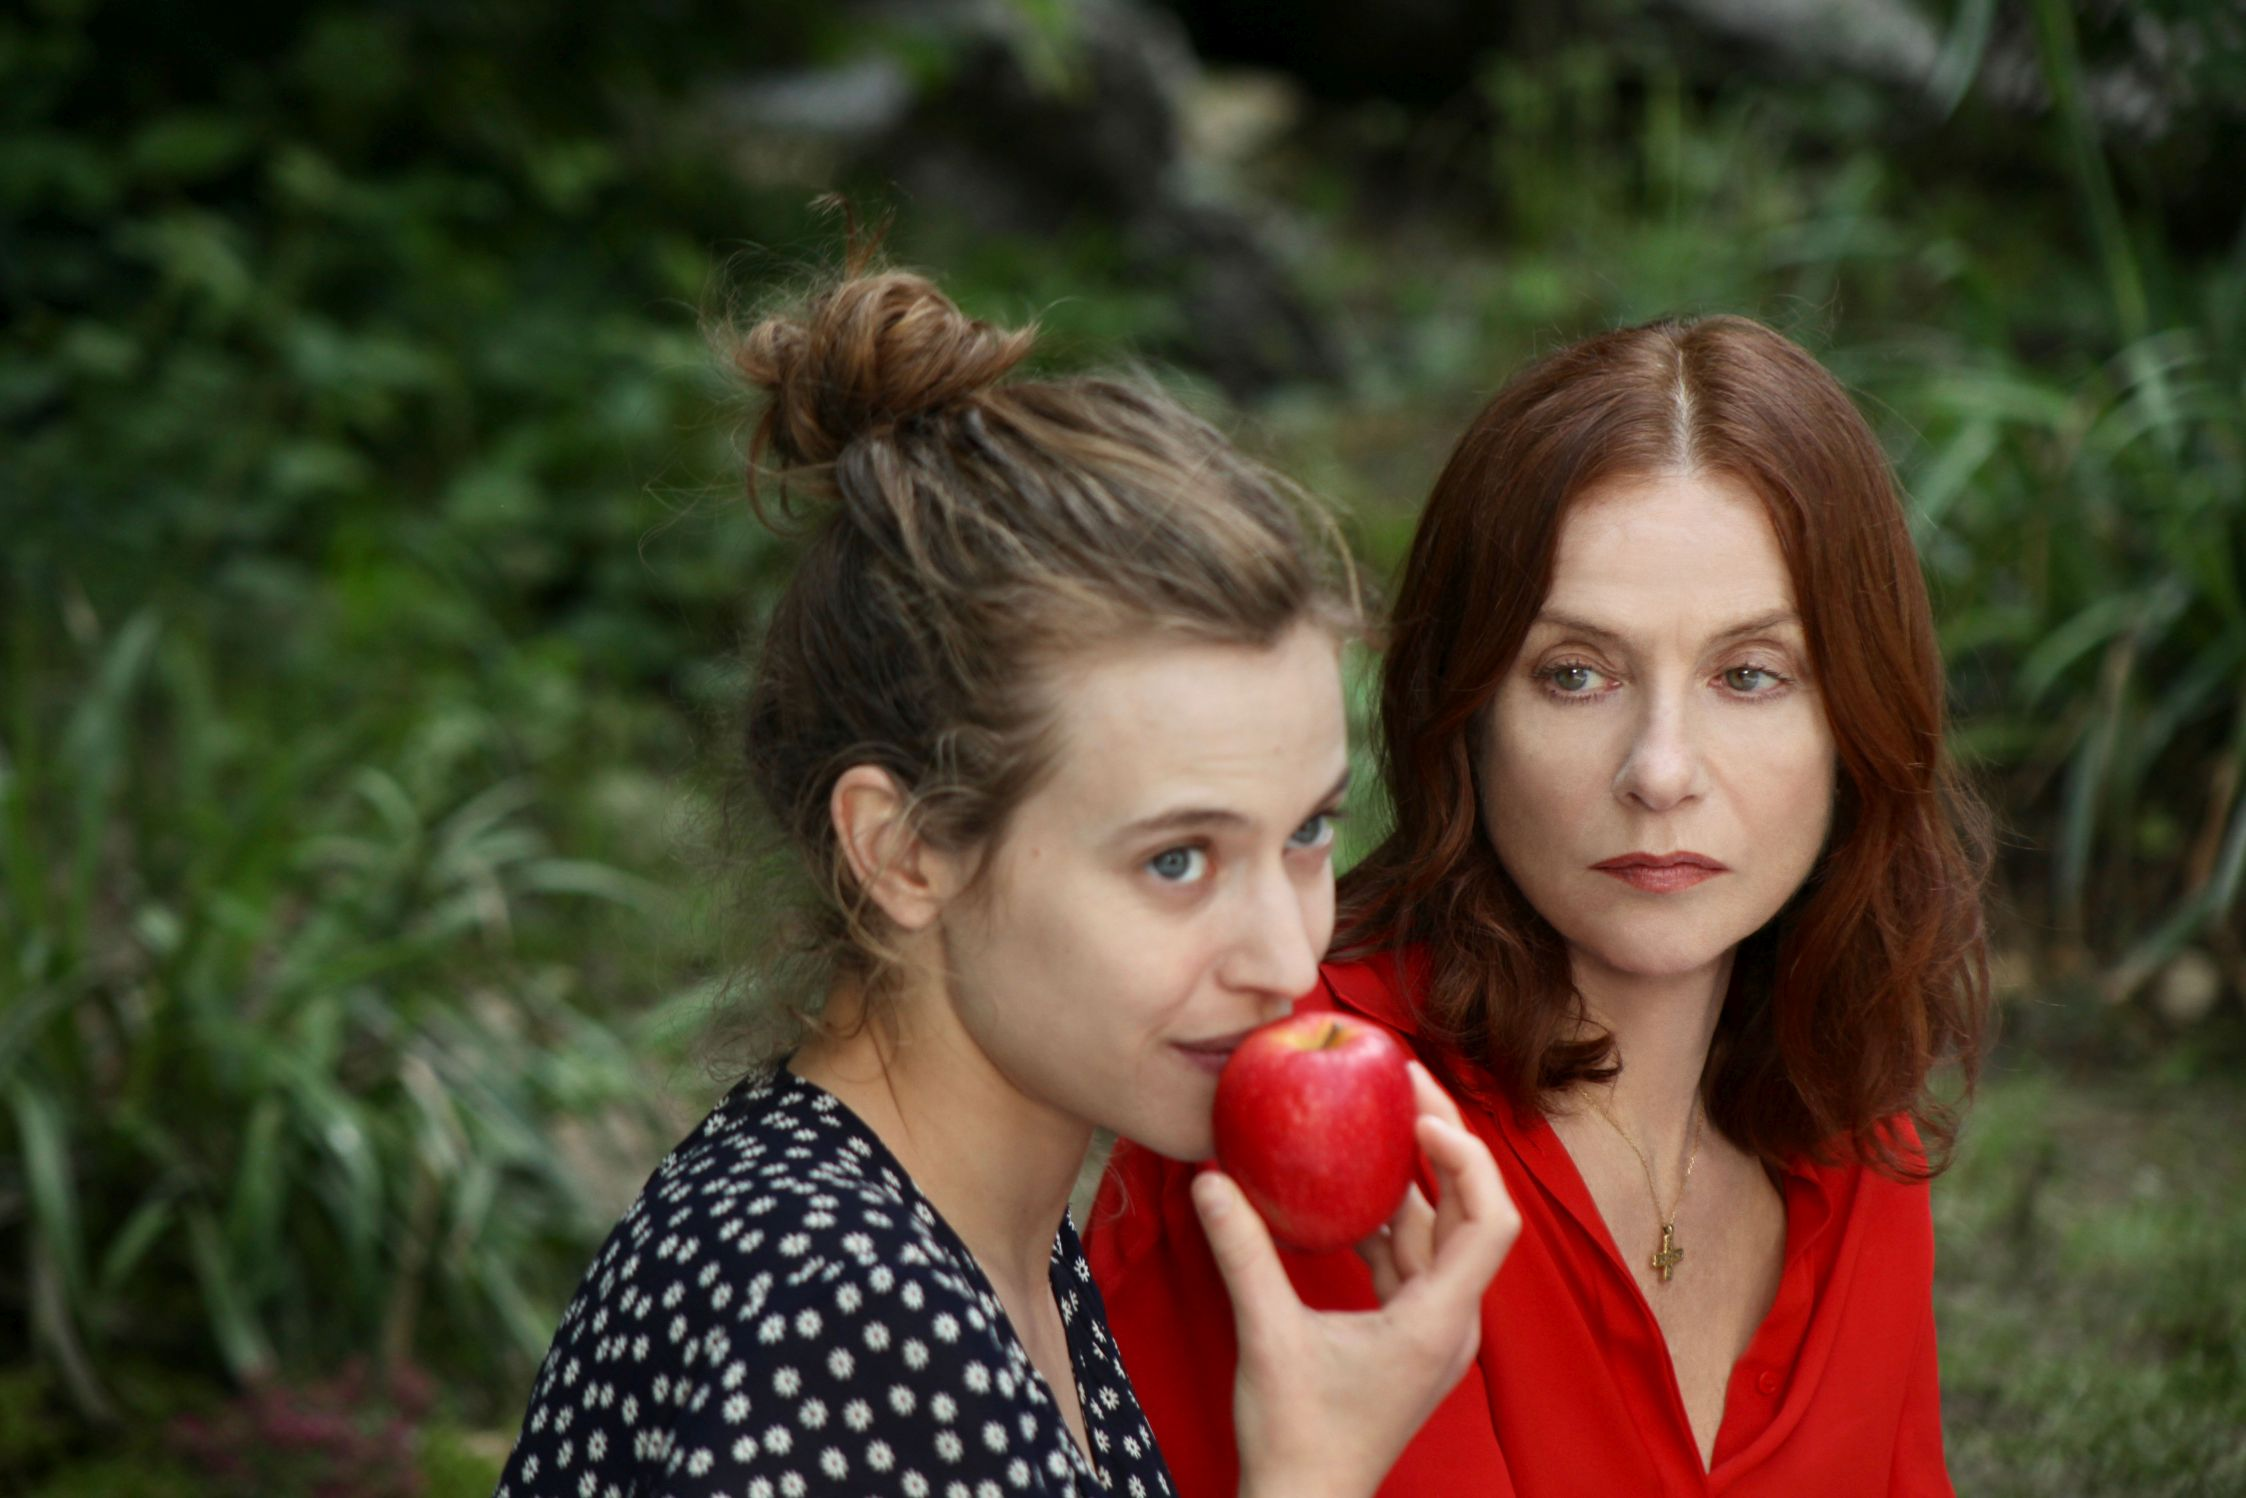 French Film Festival 19', 'Pure As Snow': Claire with her stepmother Maud at a picnic in a forest.